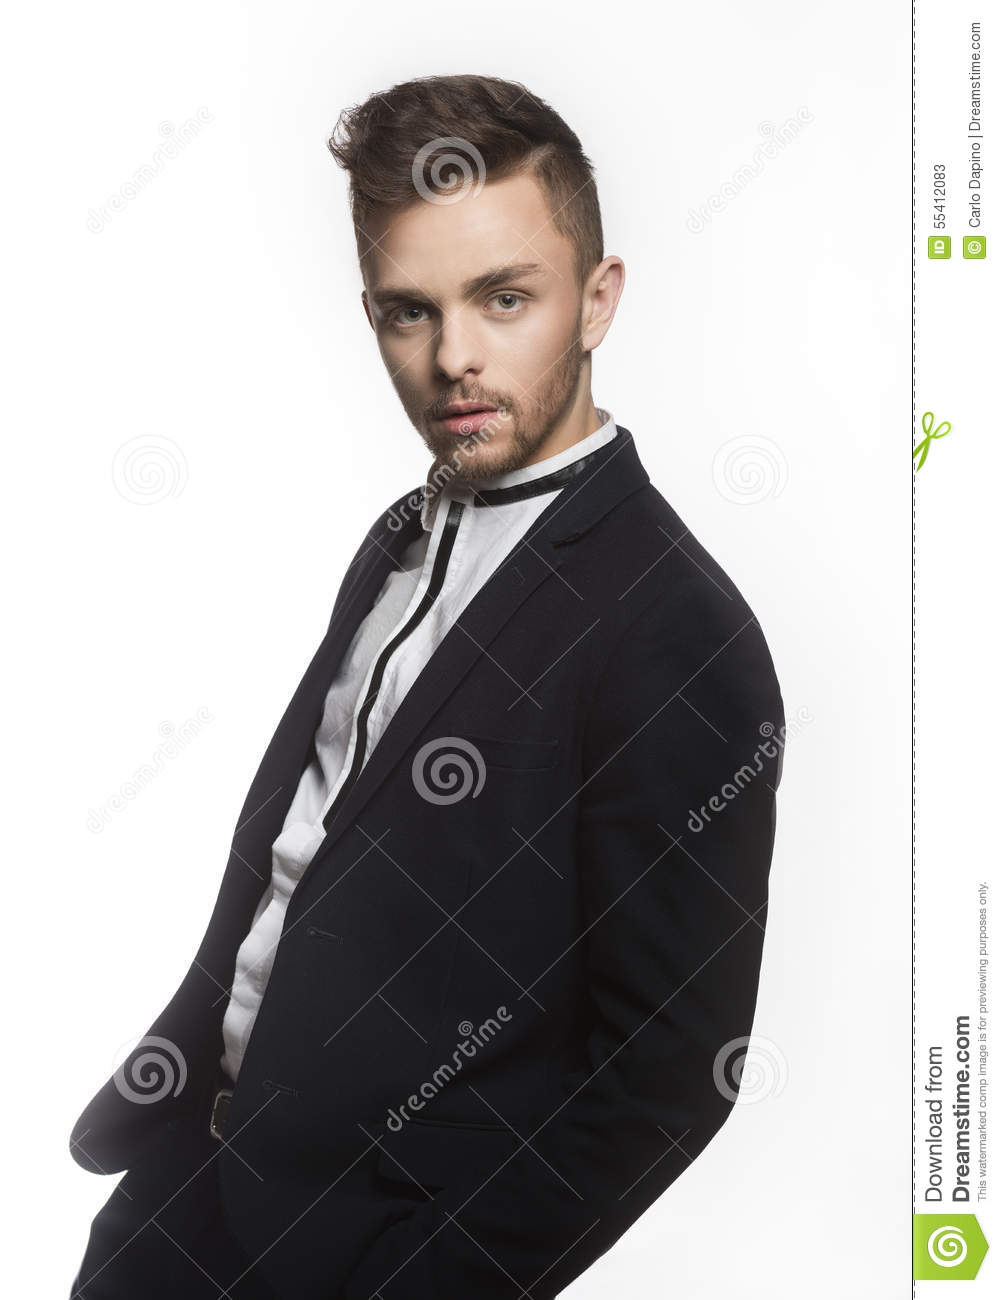 Handsome Man In Trendy Black Suit Stock Photo - Image: 55412083